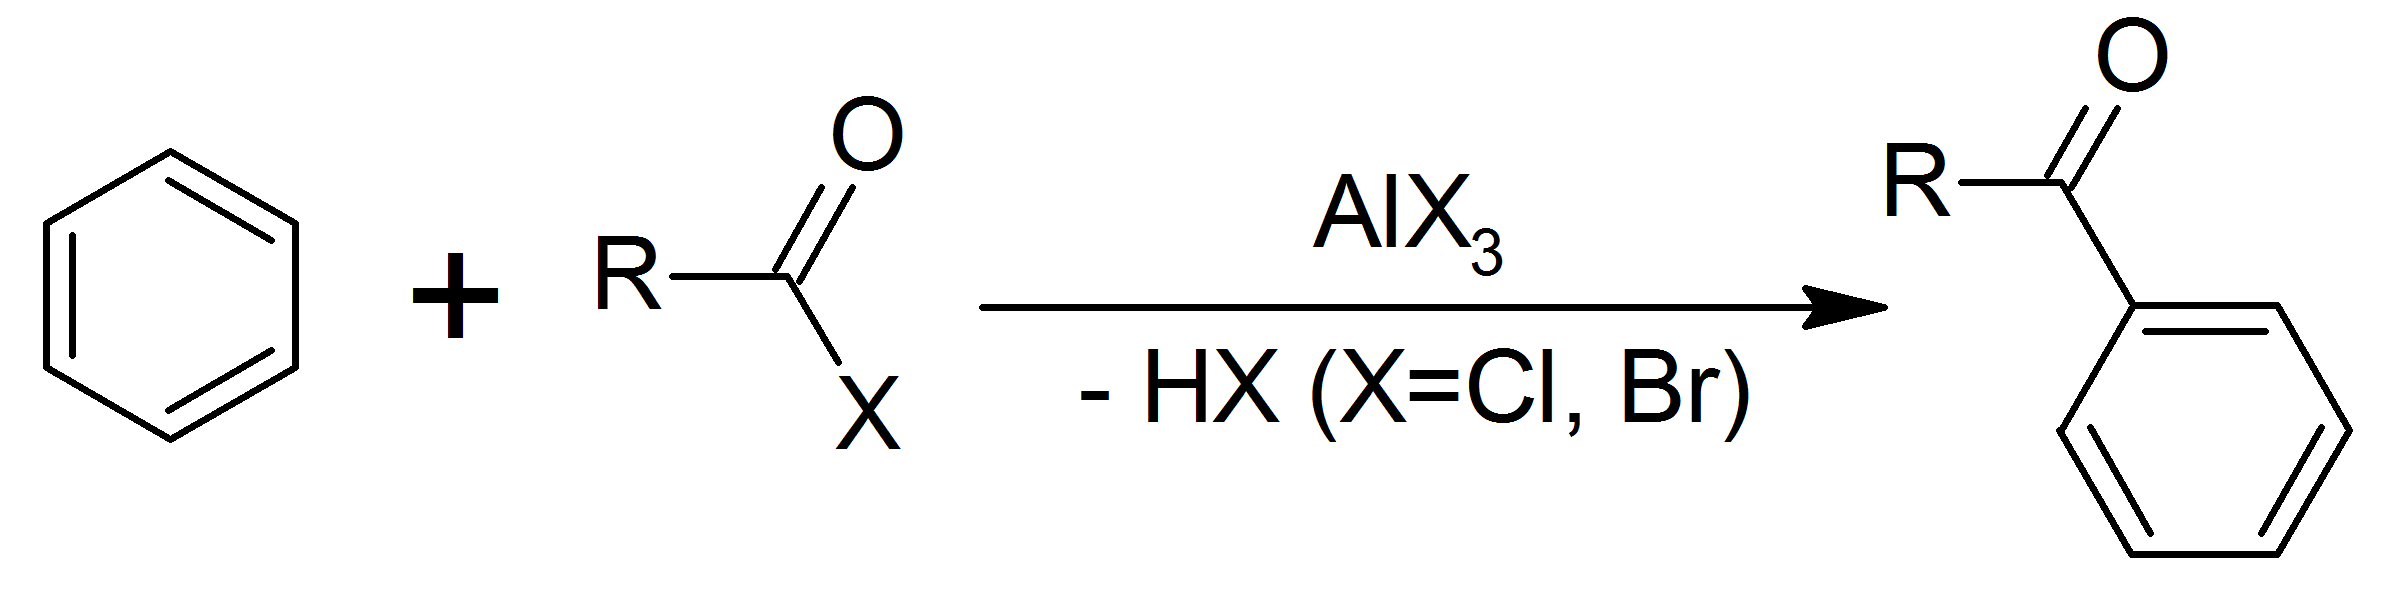 Friedel-Crafts Acylation with acyl chloride